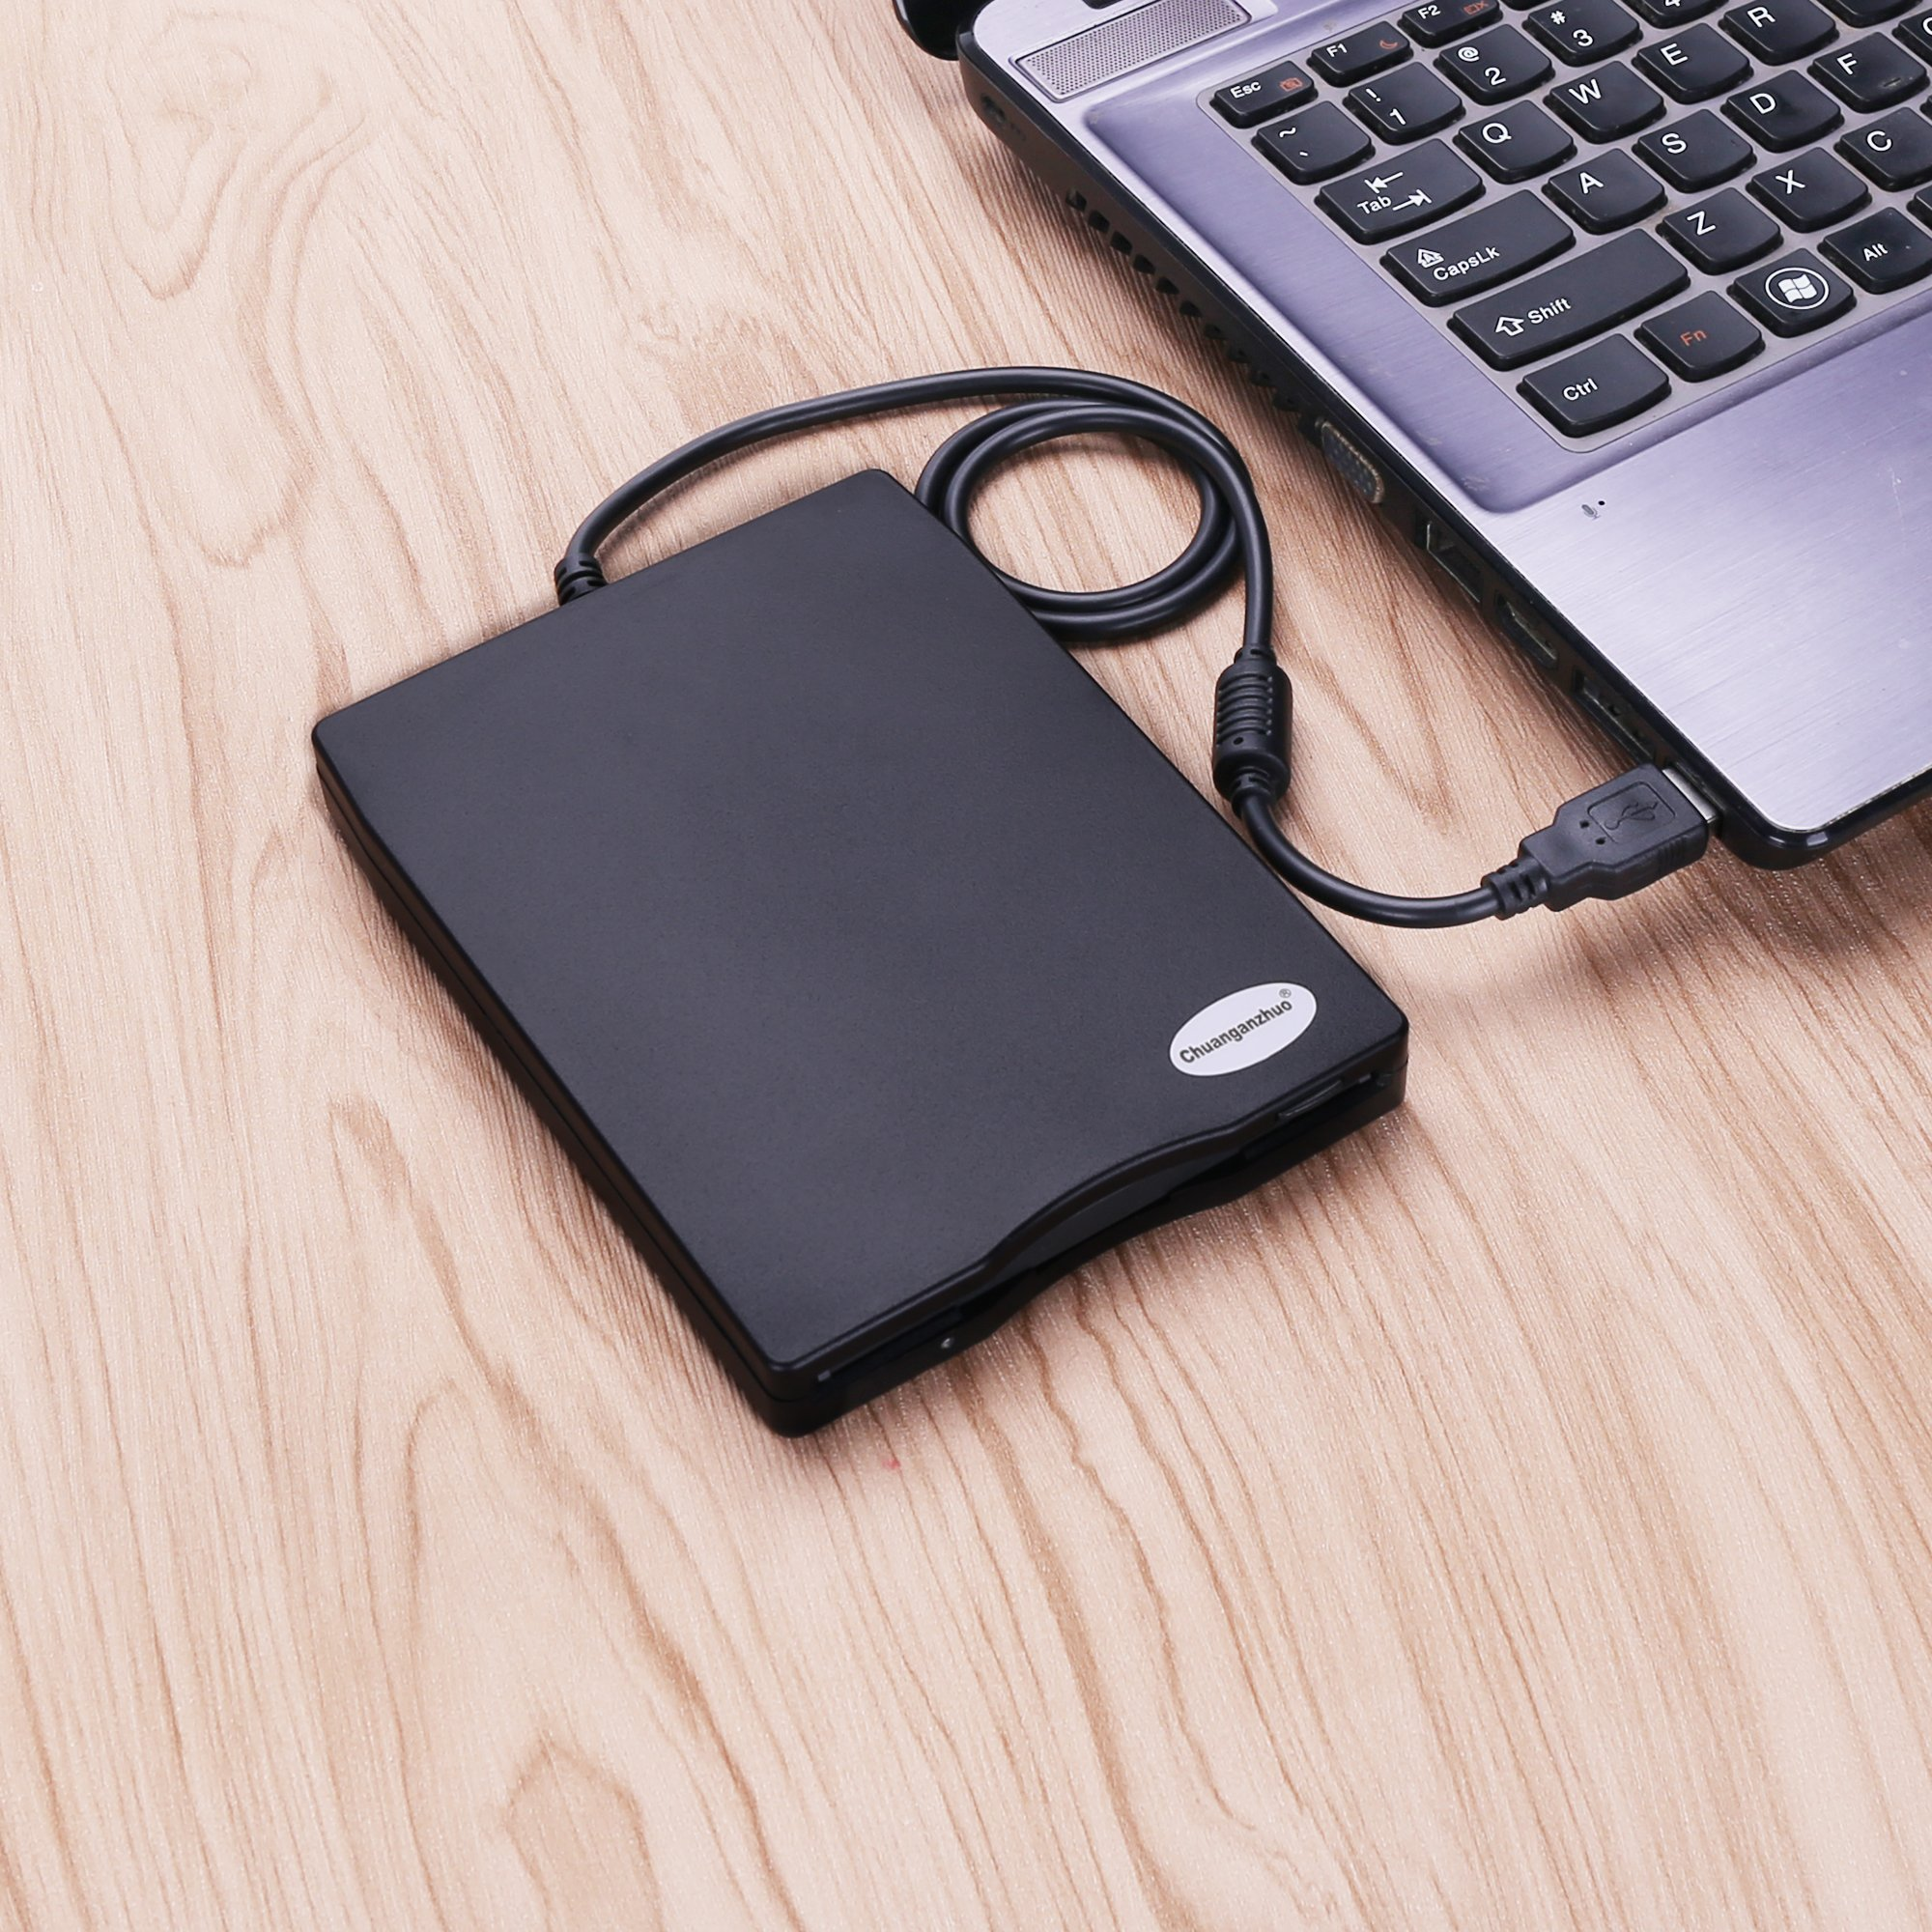 3.5'' USB External Floppy Disk Drive Portable 1.44 MB FDD PC Windows 2000/XP/Vista/7/8/10 Mac,No Extra Driver Required,Plug Play,Black by Chuanganzhuo (Image #7)